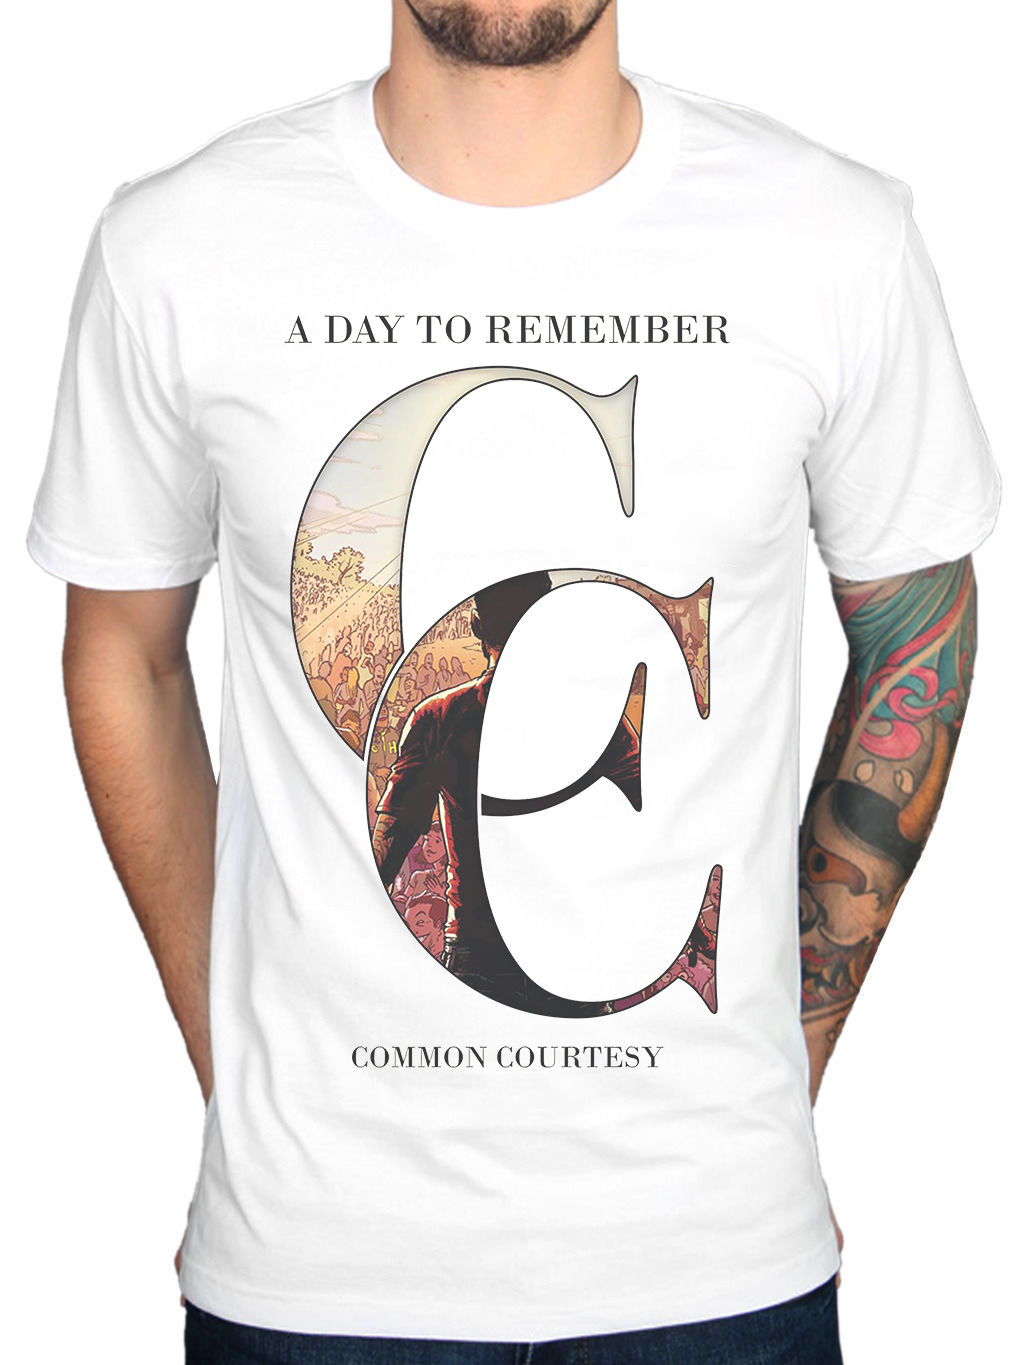 A Day To Remember Common Courtesy Mens White Cotton Top T-Shirt Tee